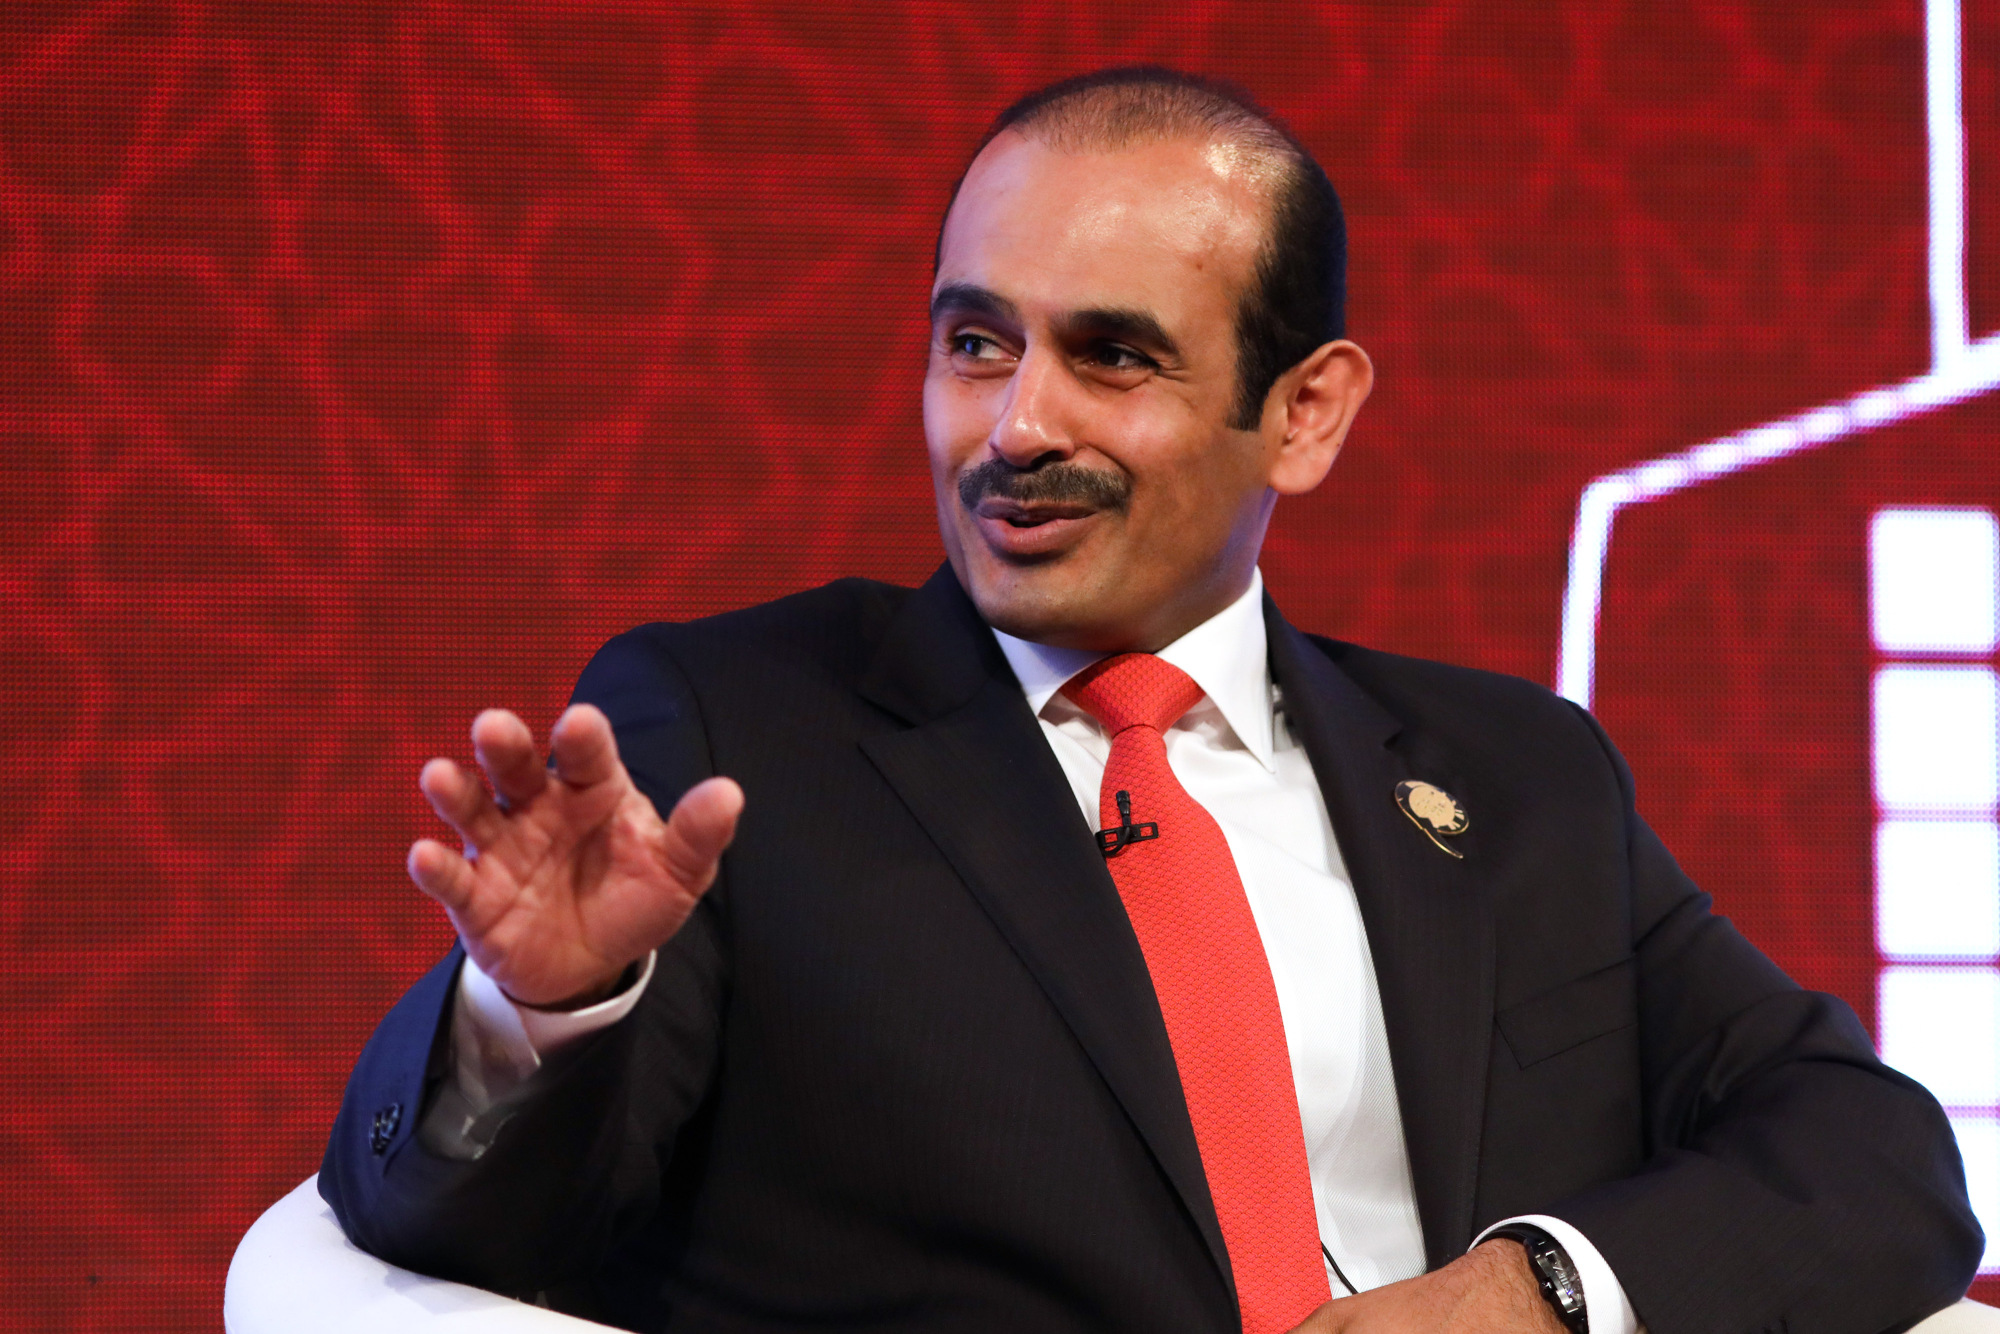 Saad Sherida Al Kaabi, chief executive officer of Qatar Petroleum, speaks during the Qatar-U.K. Business and Investment Forum in London, U.K., on Monday, March 27, 2017. Photographer: Chris Ratcliffe/Bloomberg